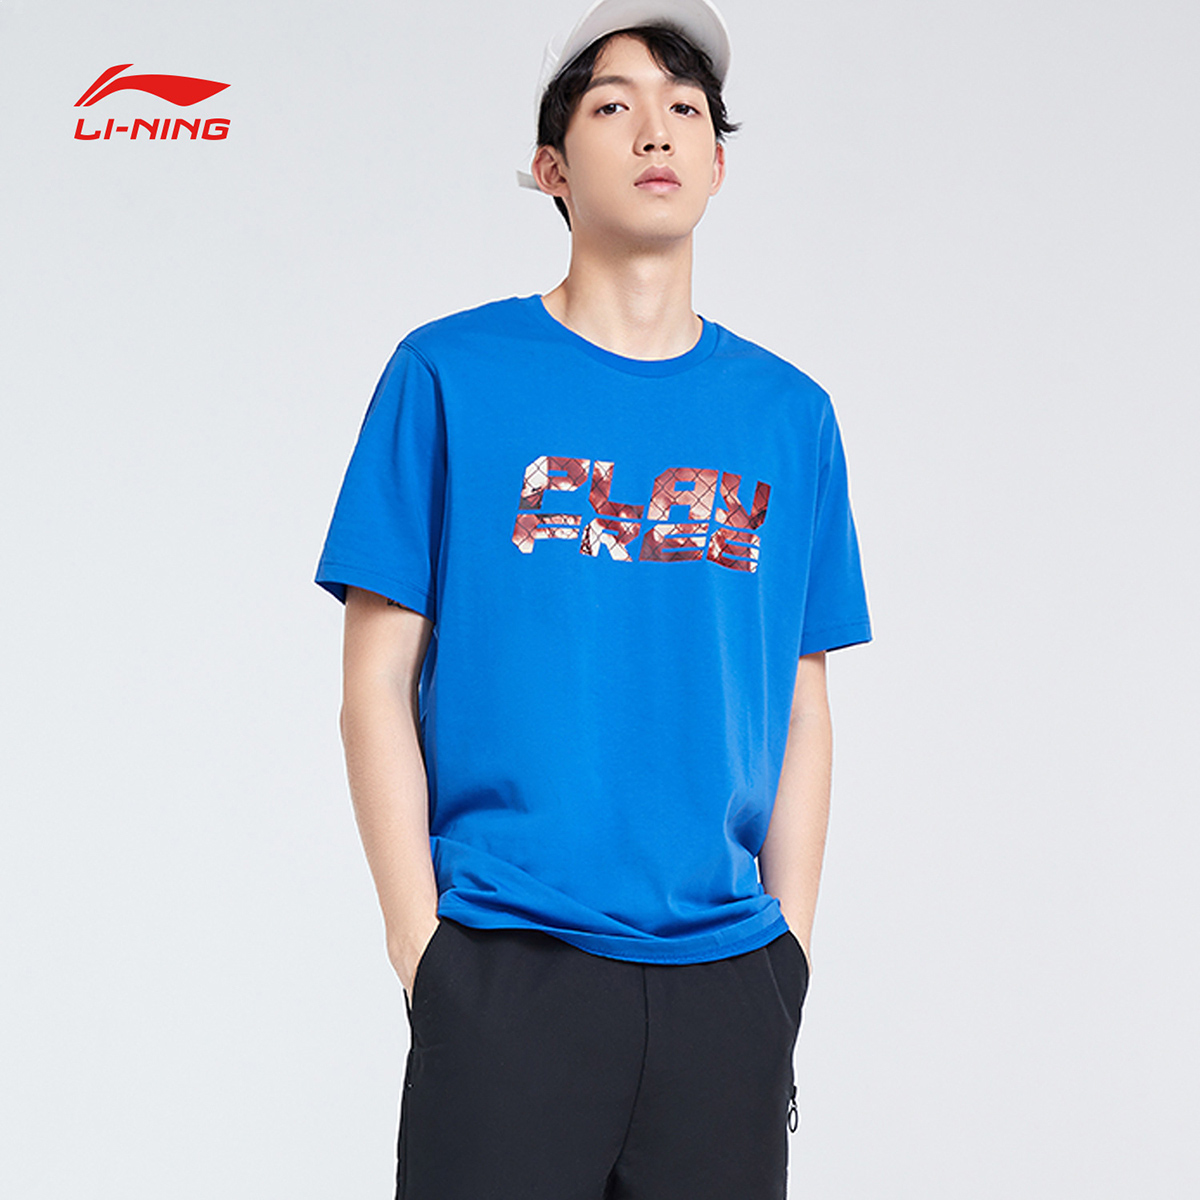 Li Ning short sleeve t-shirt men's new basketball series sportswear round neck top men's sportswear